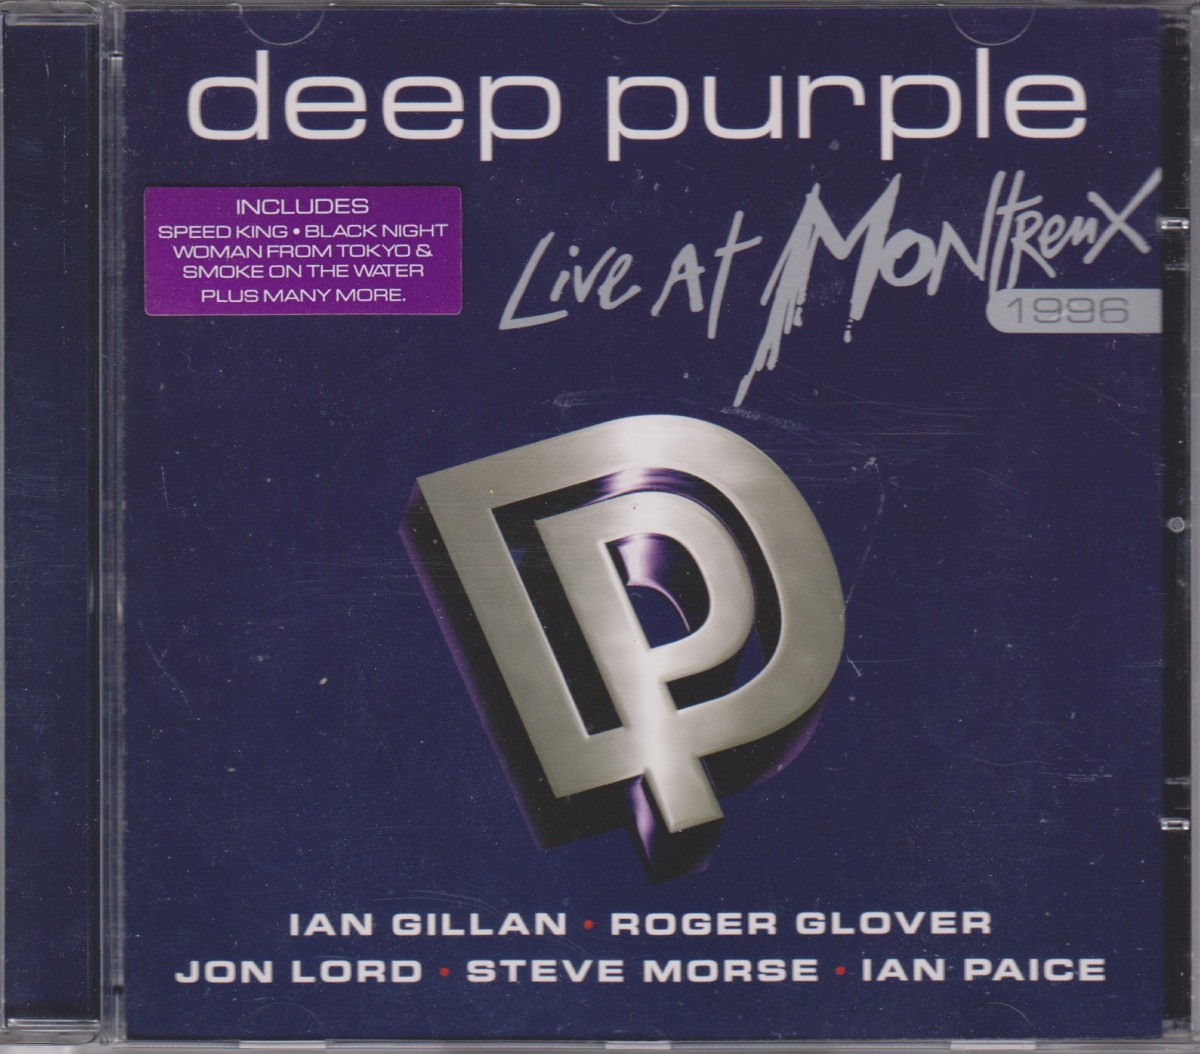 REVIEW:  Deep Purple - Live at Montreux 1996 (2006)